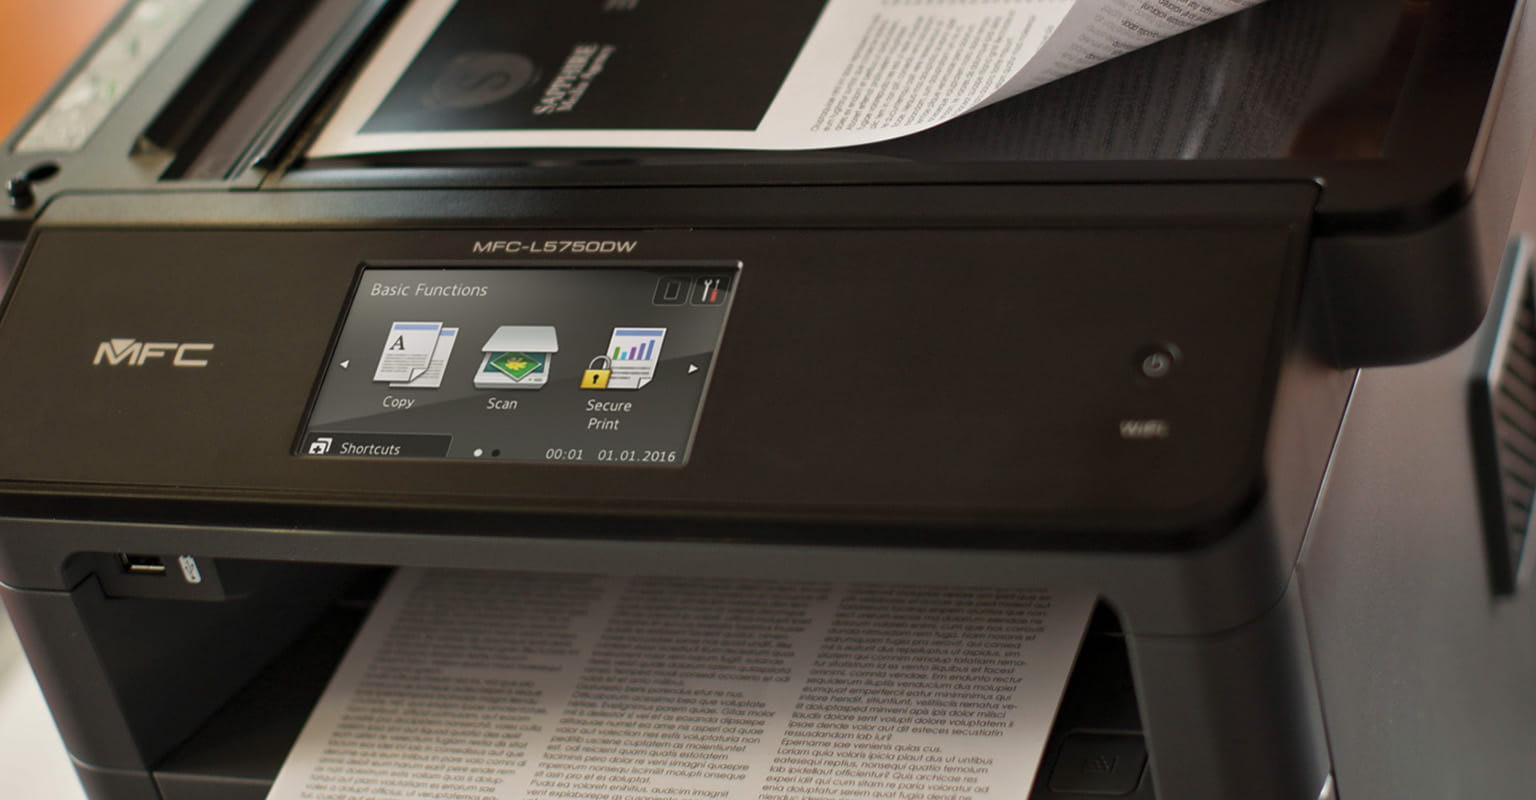 Scanning to the cloud on a Brother L6000 printer